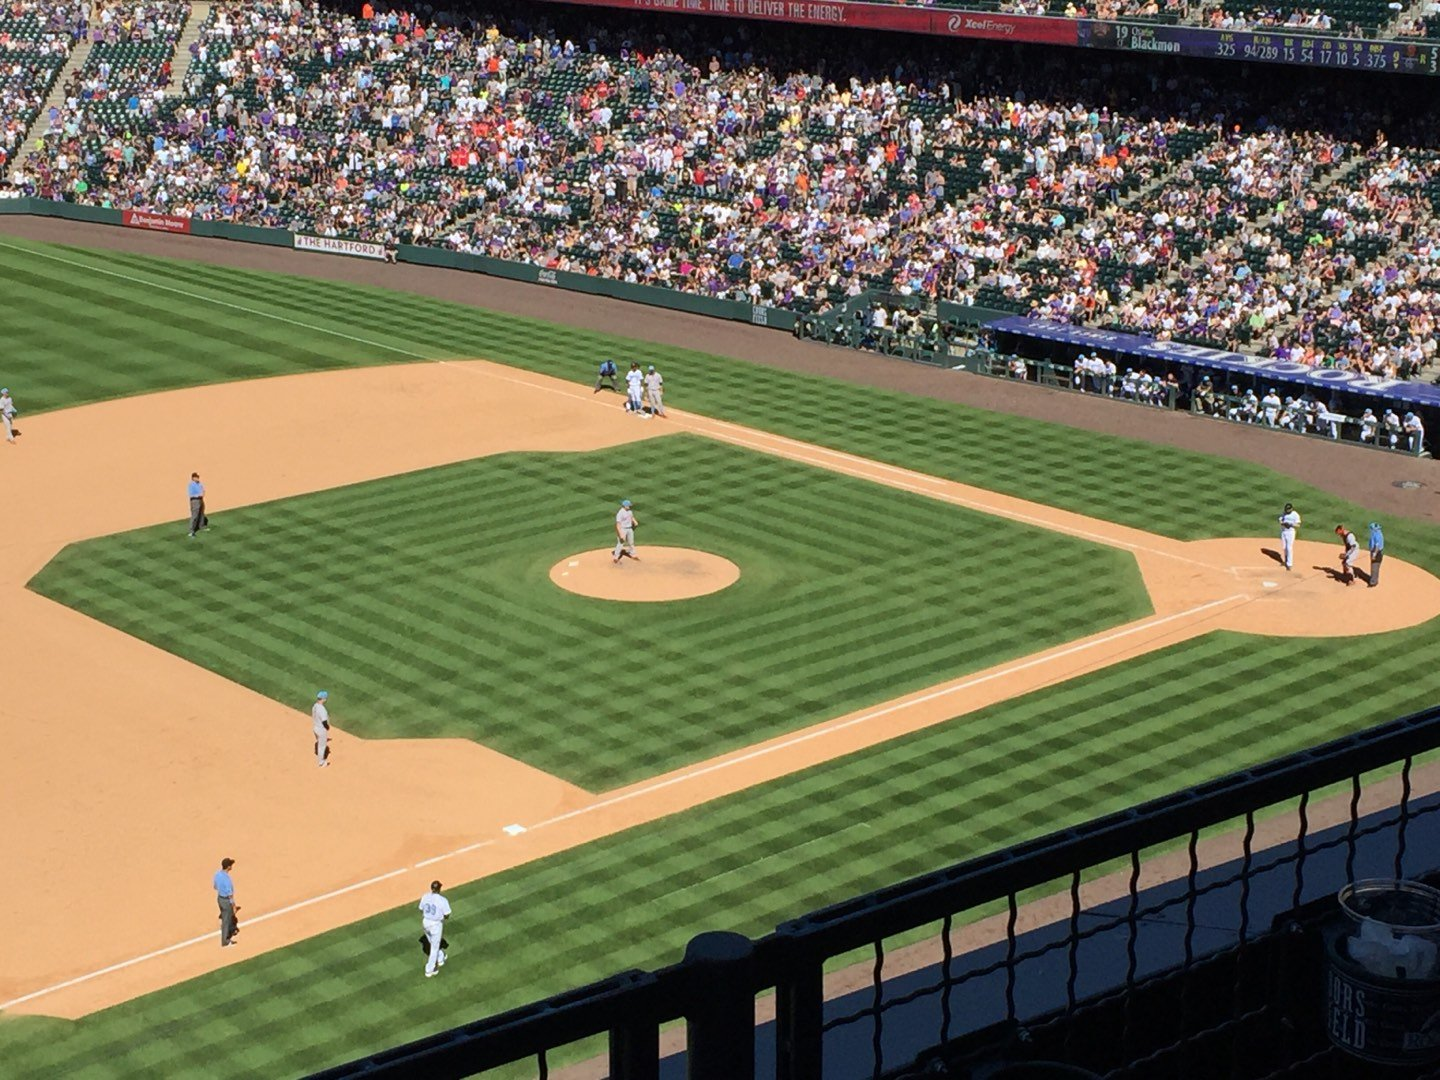 Coors Field Section L343 Row 2 Seat 8